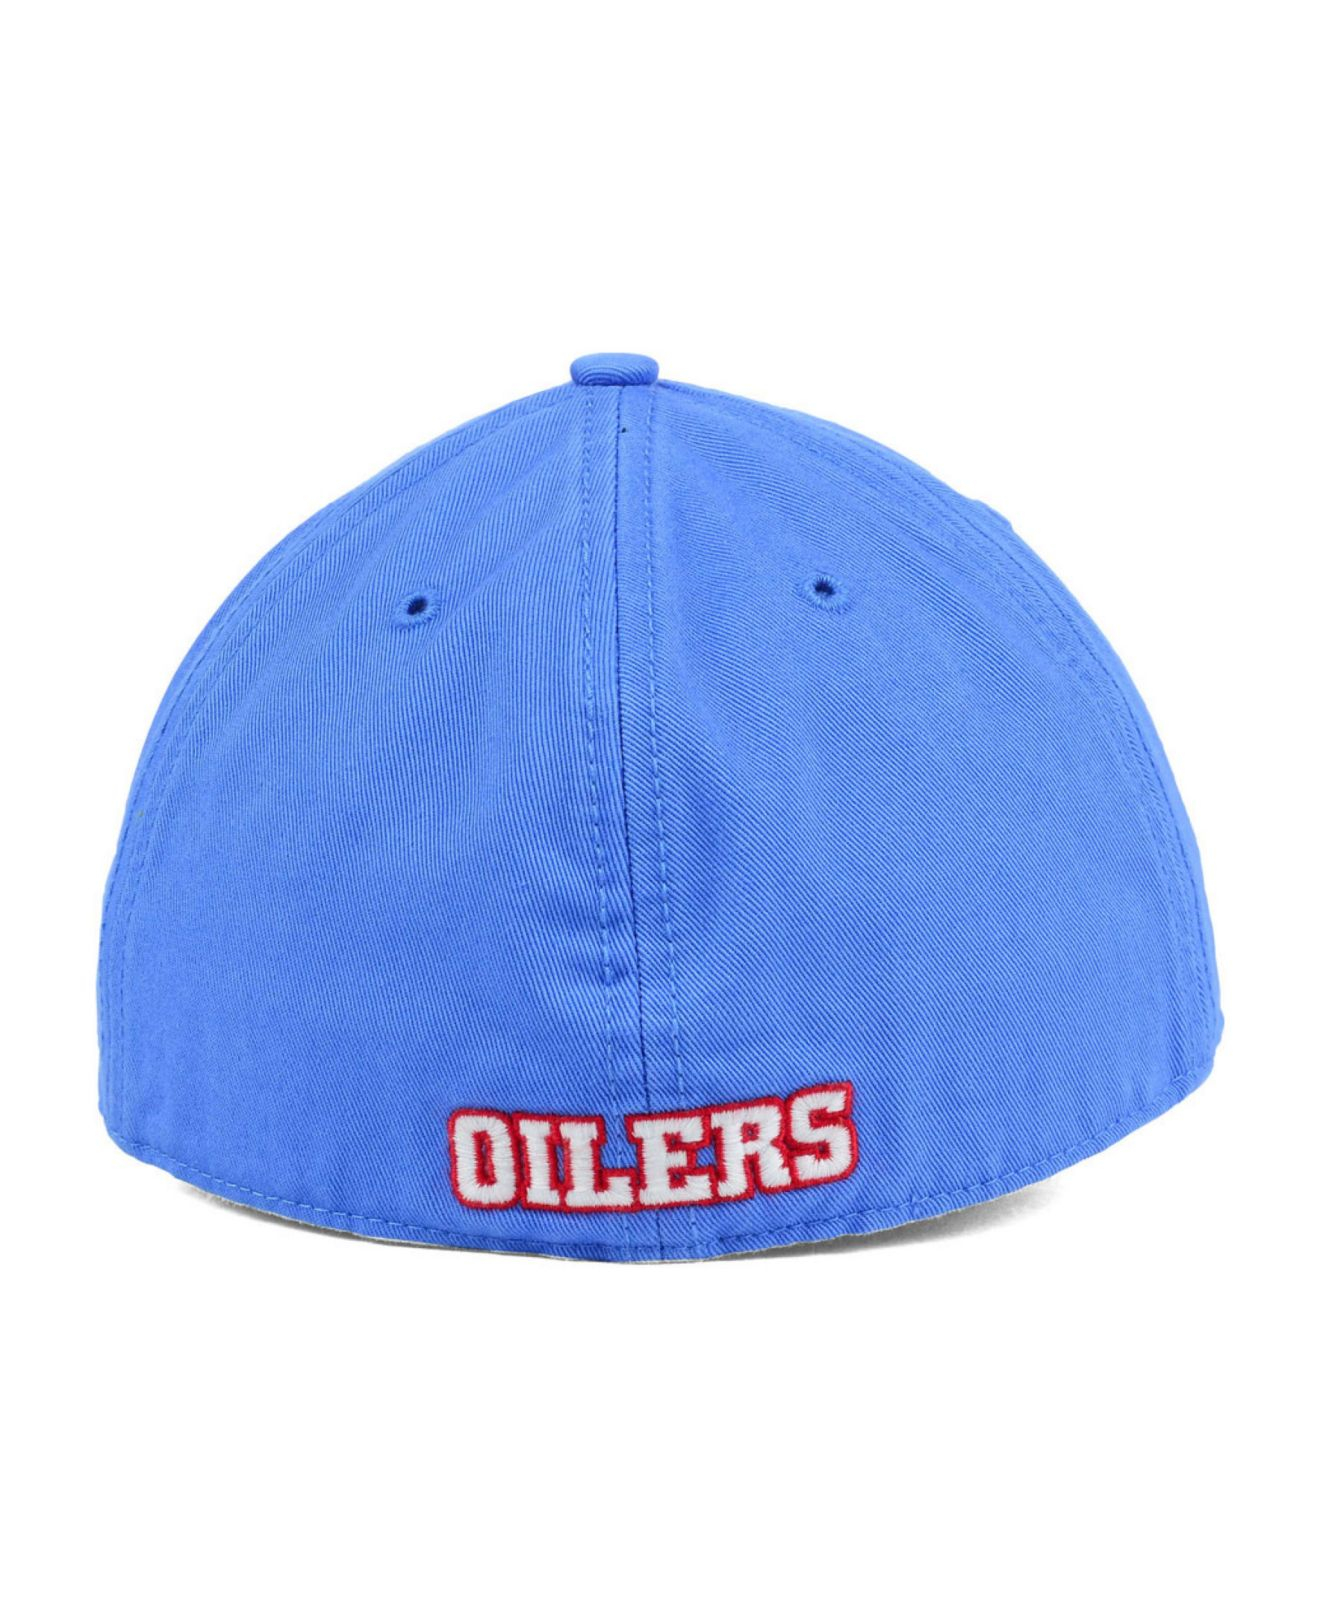 Lyst - 47 Brand Houston Oilers Franchise Cap in Blue for Men 7333ed730